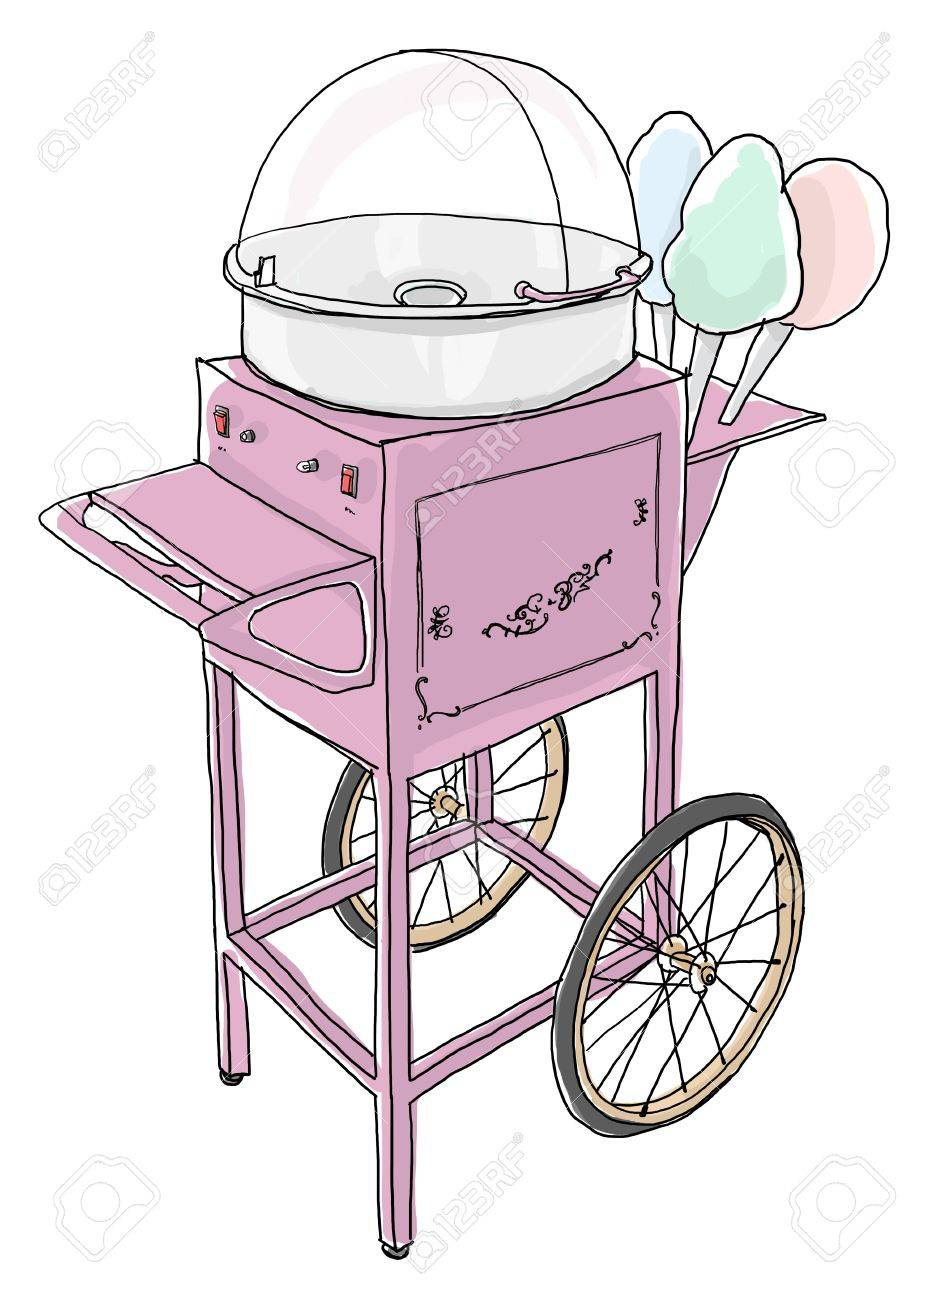 Cotton Candy Cart Old Fashioned line art - 20447229